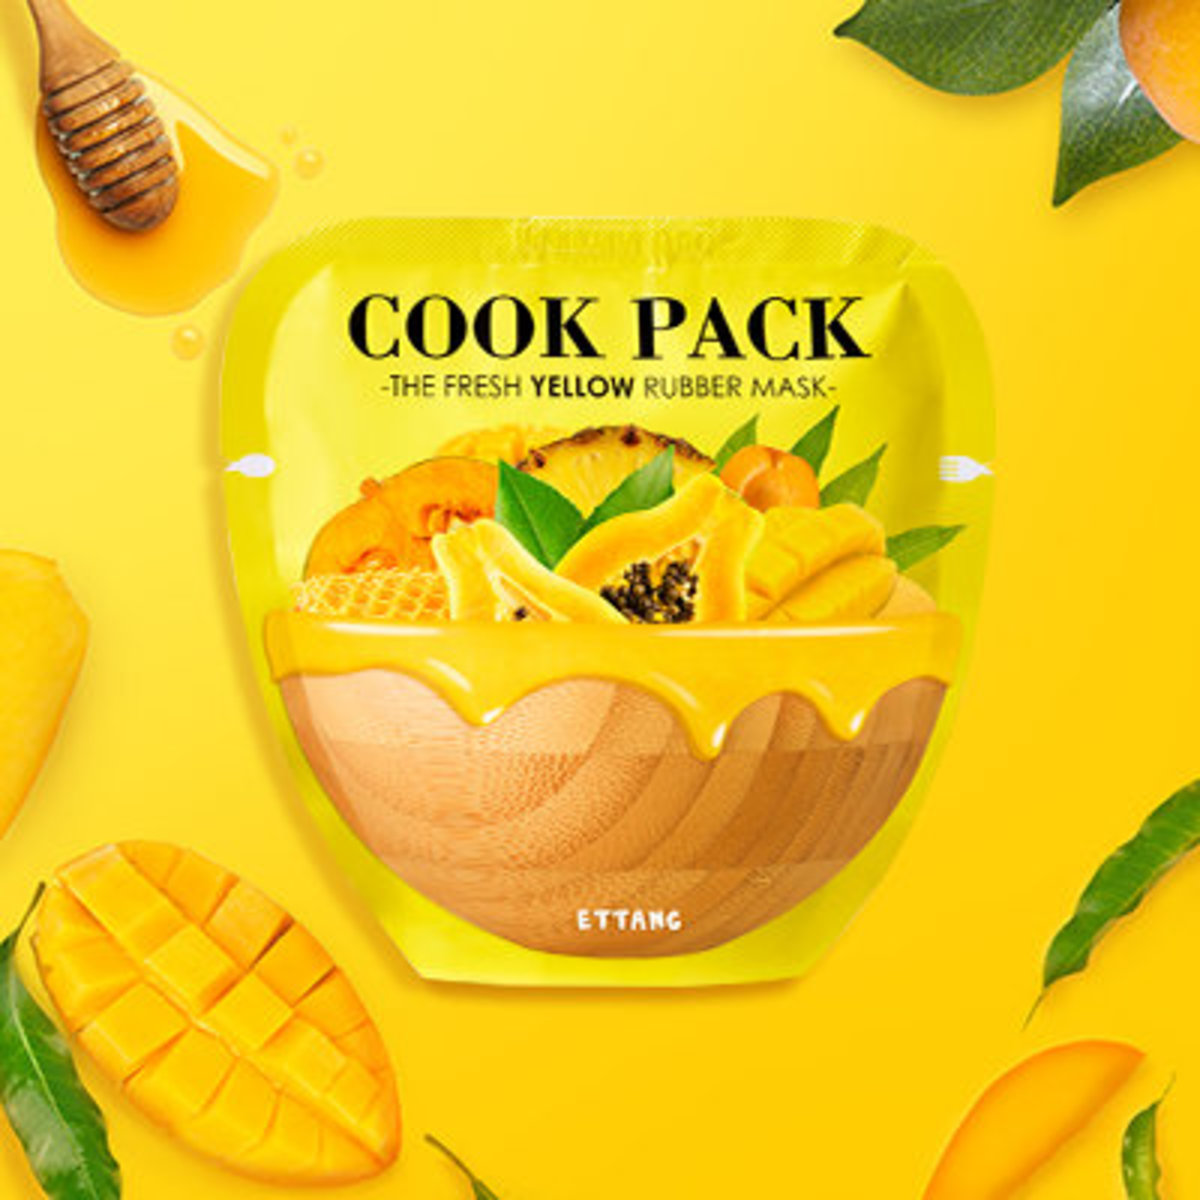 COOK PACK THE FREASH YELLOW RUBBER MASK 45G